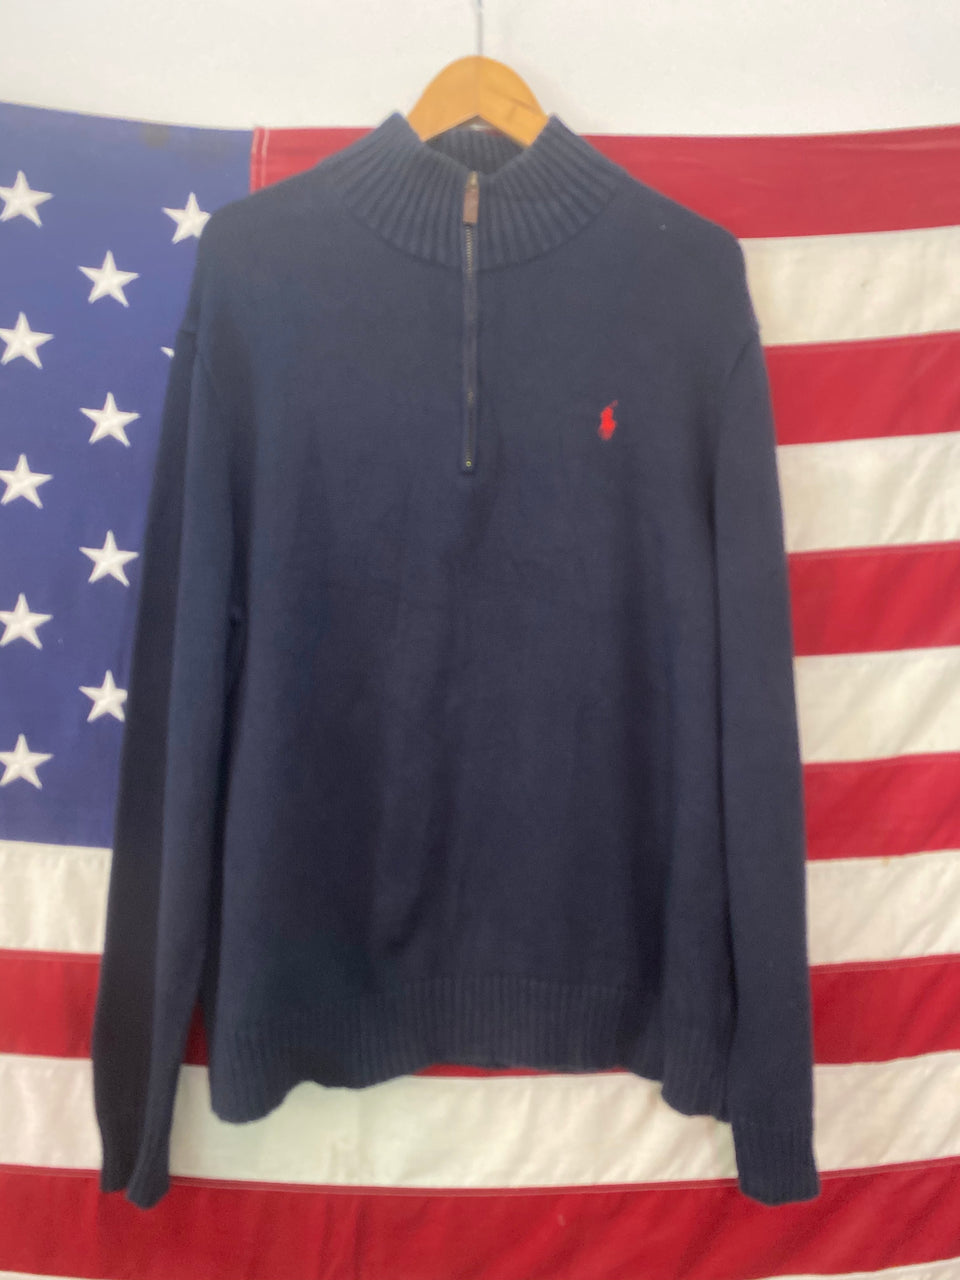 0995 Polo by Ralph Lauren knitted jumper